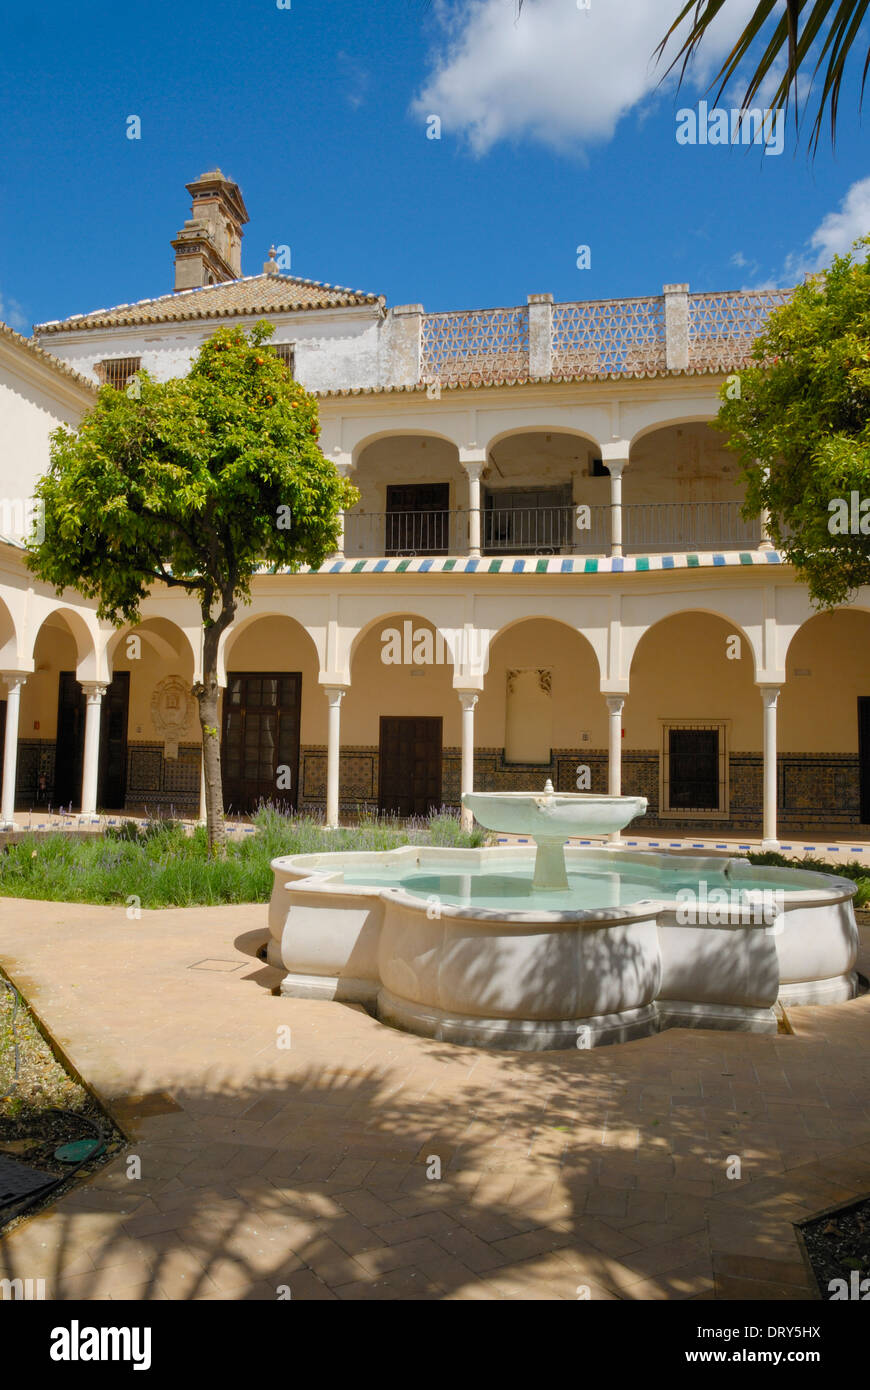 Patio of cloister convent in Seville, Andalusia, Spain - Stock Image